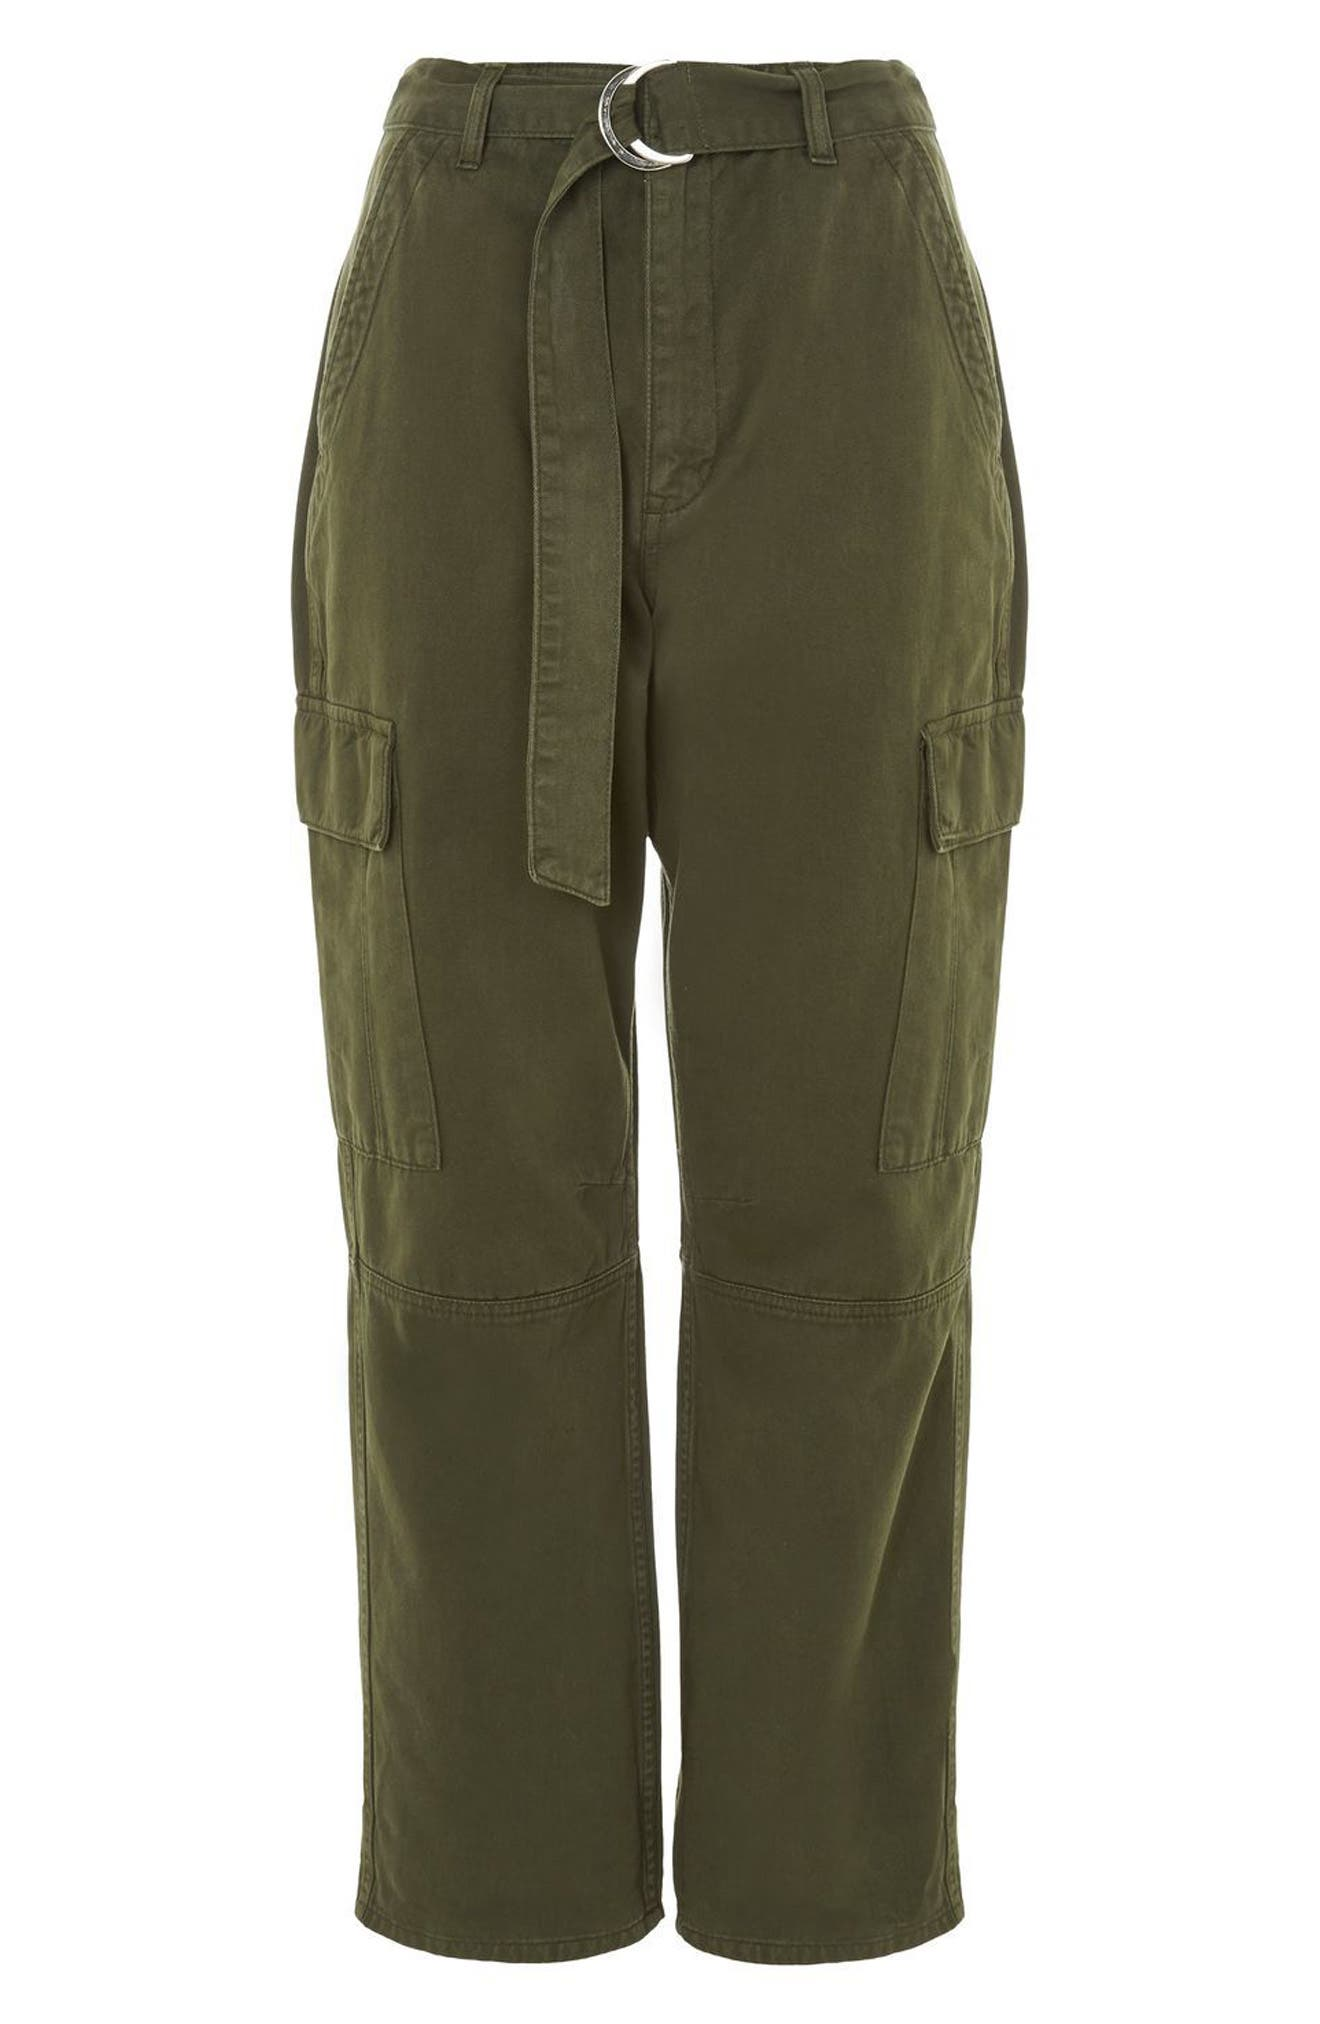 Combat Pocket Utility Trousers,                             Alternate thumbnail 4, color,                             Olive